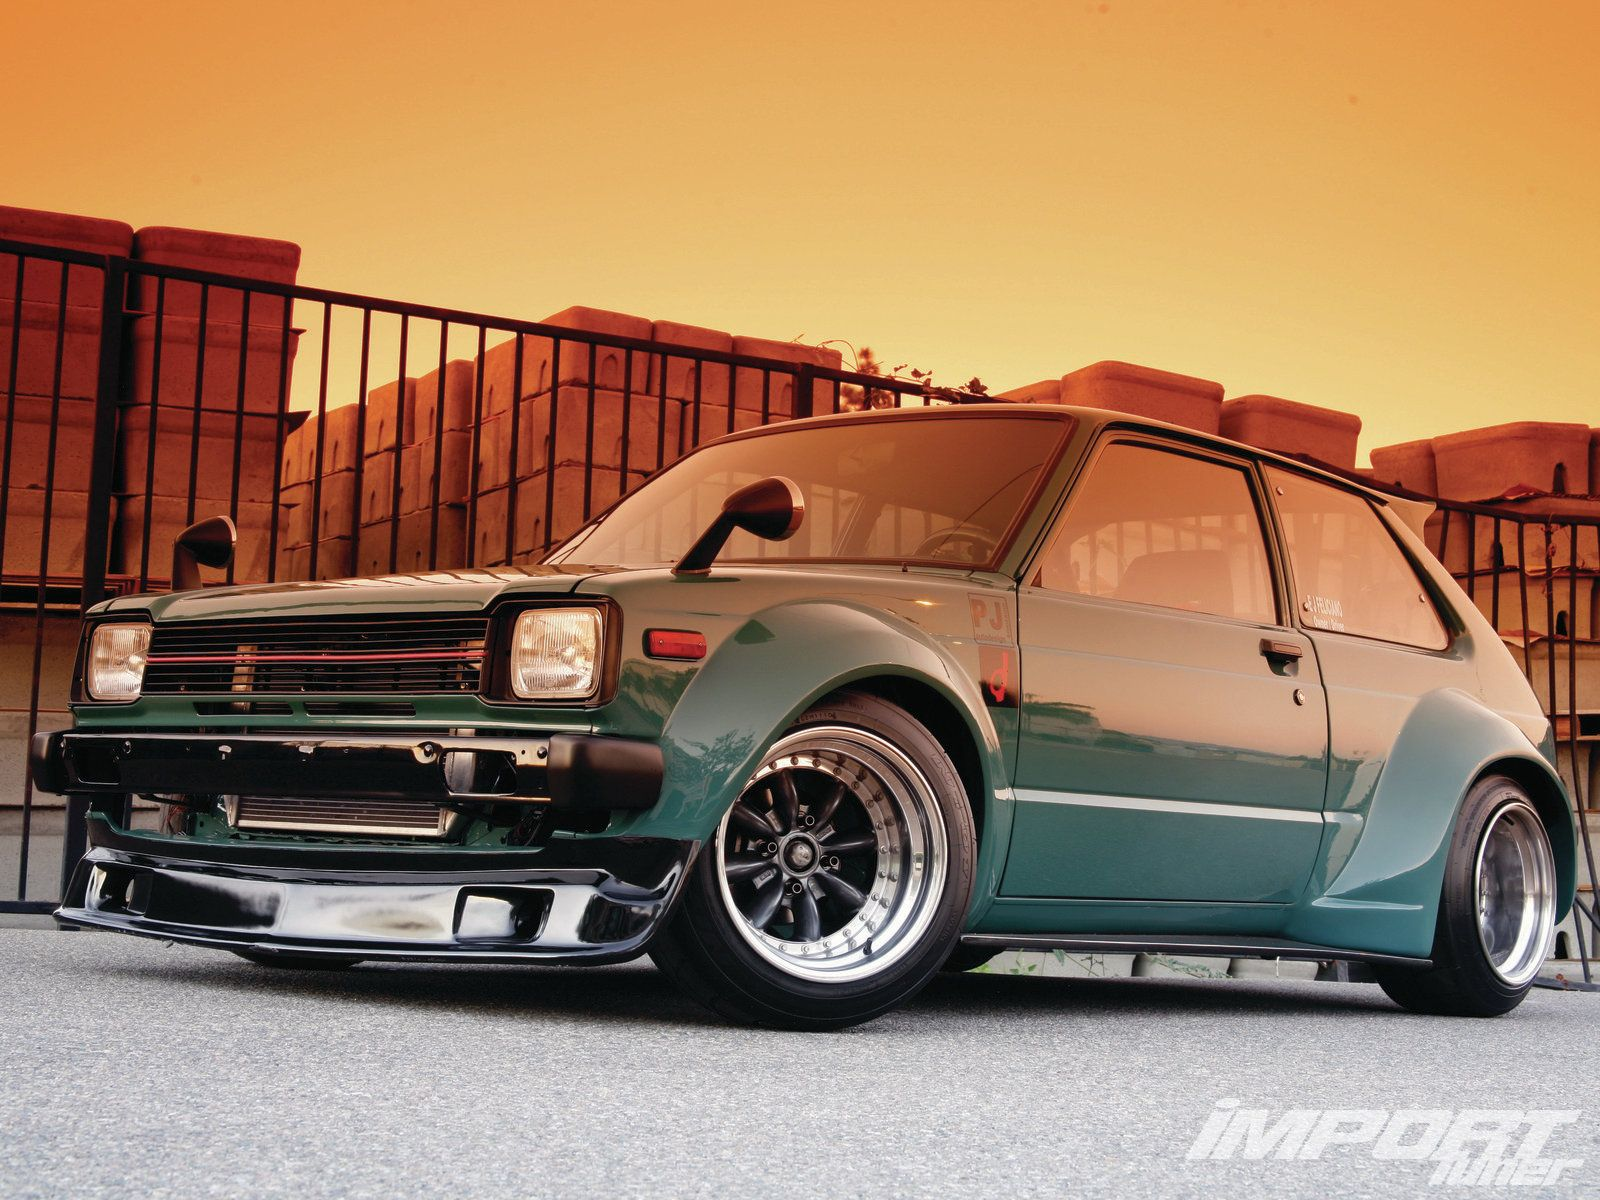 Mobil Sport Gambar 1981 Toyota Starlet Hd Wallpaper And Background